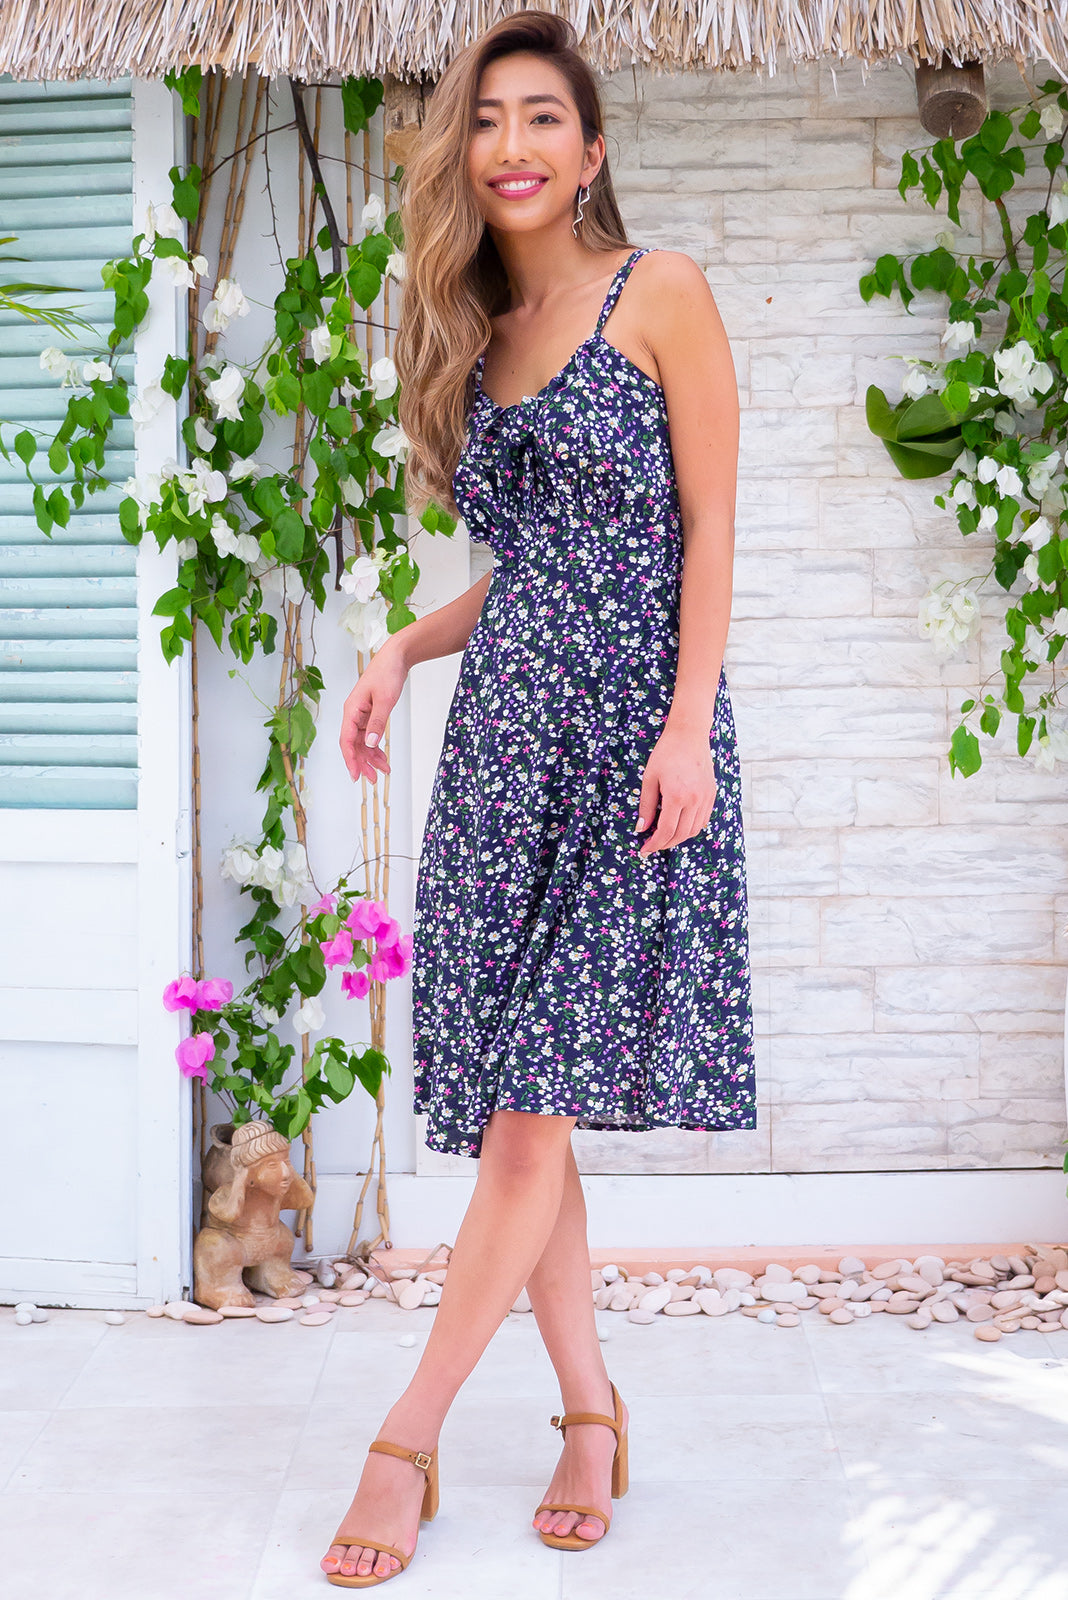 Jay Bay Nikita Navy Mini Dress, bohemian summer style, side pockets, adjustable drawstring design, navy base with small floral print featuring fuchsia, white, gold and forest green.